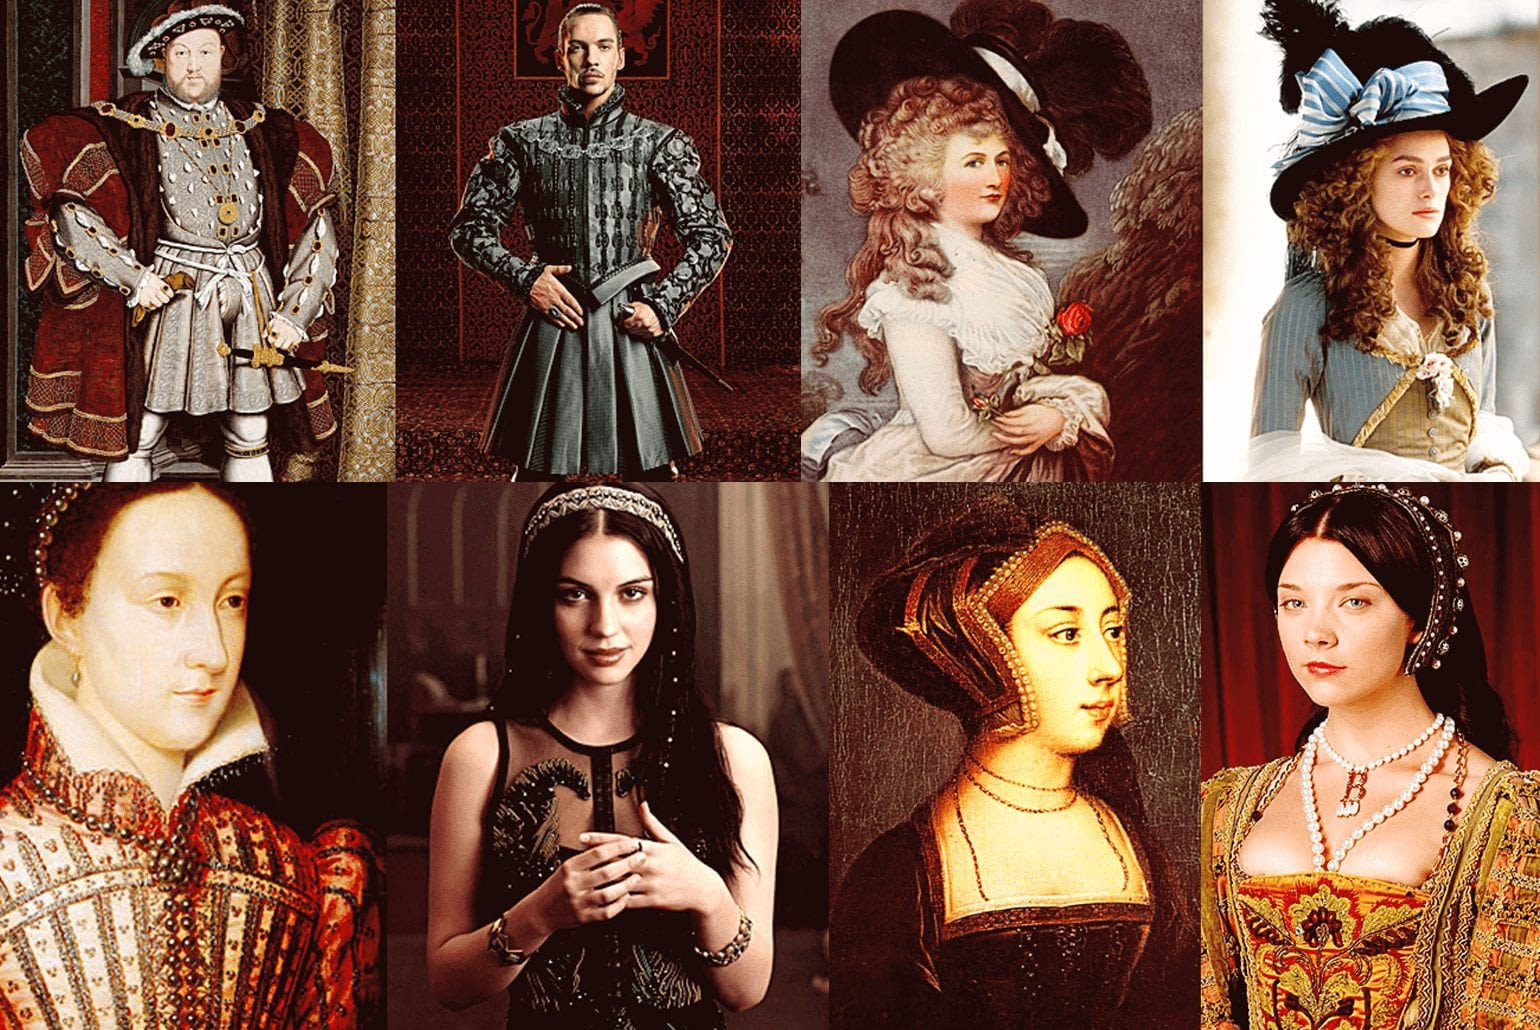 What Did Kings and Queens Really Look Like